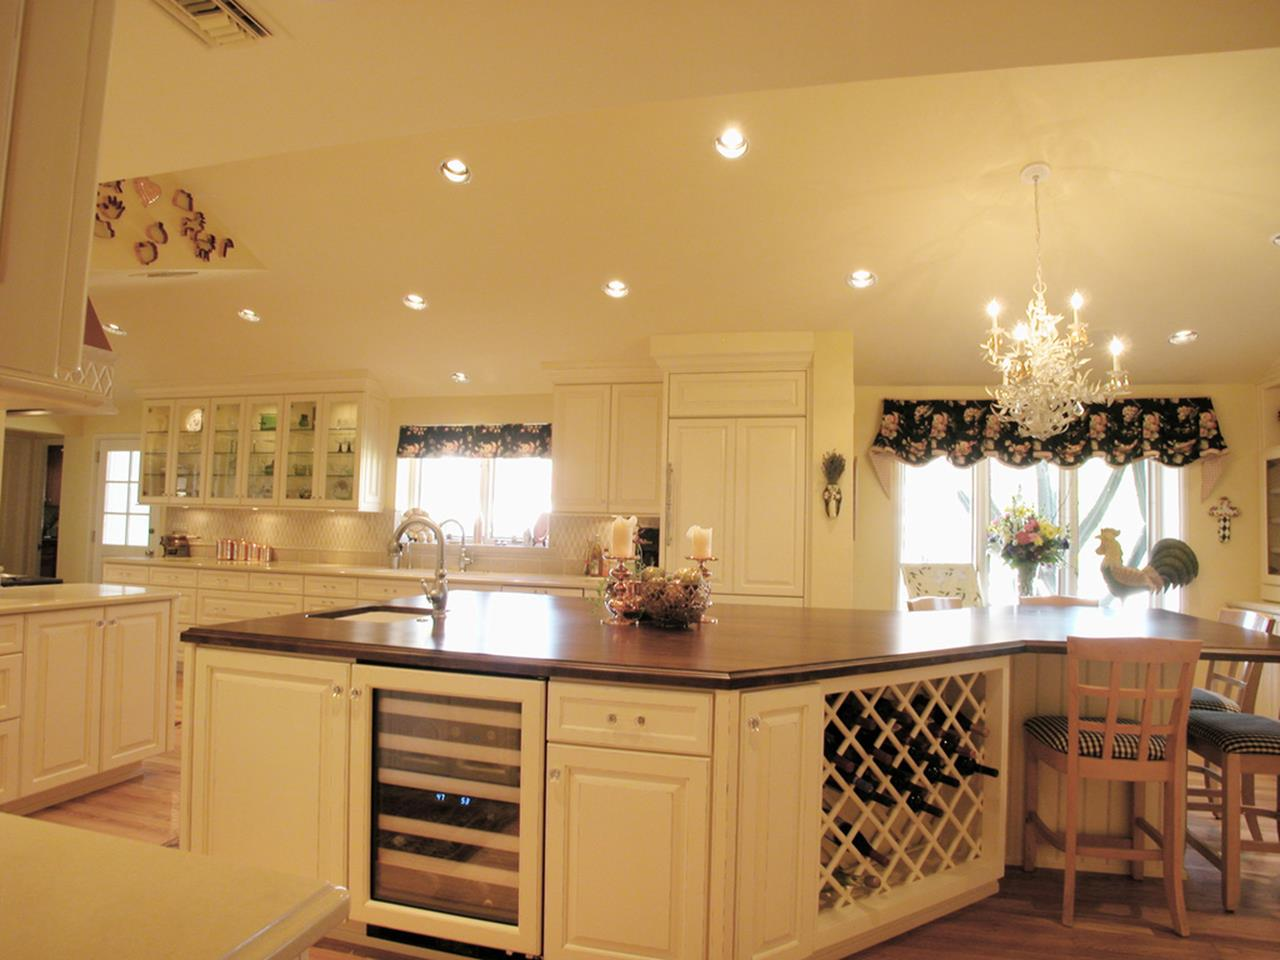 Country Kitchen Accessories and Decor Ideas 21